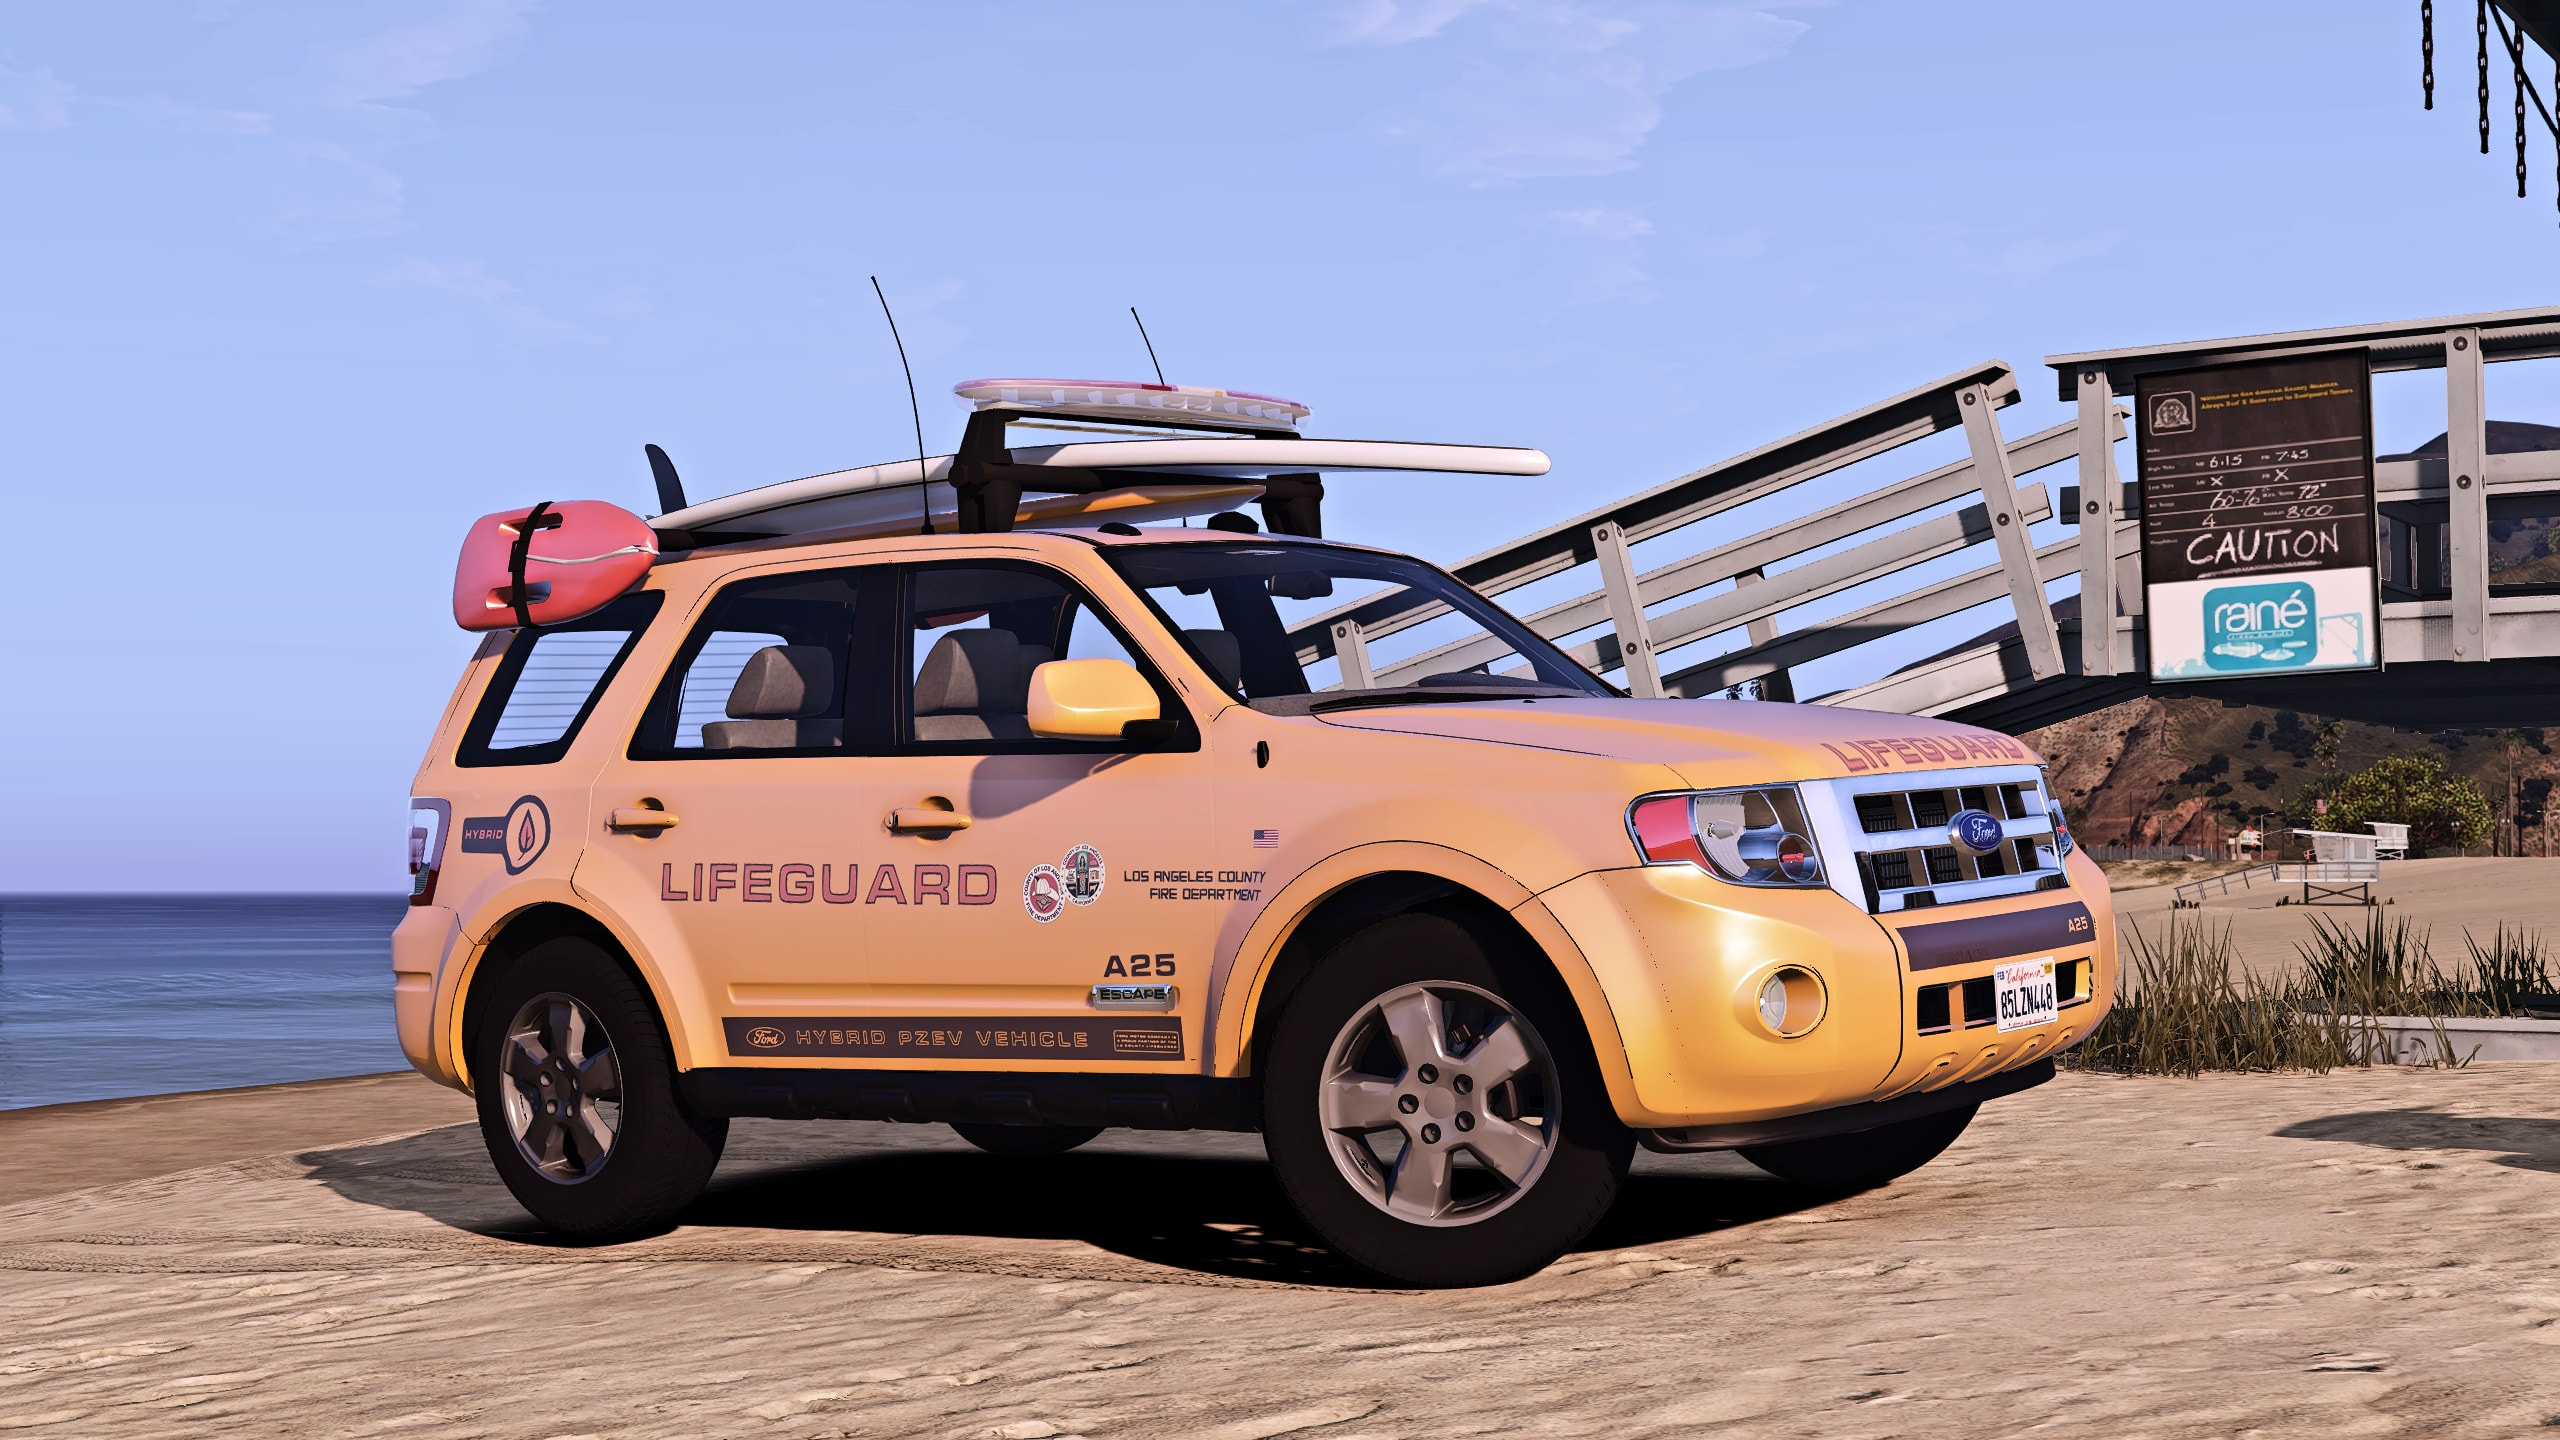 Ford Escape 2012 LA Lifeguard [Add-on/Replace] [ELS|Wipers] - GTA5-Mods.com